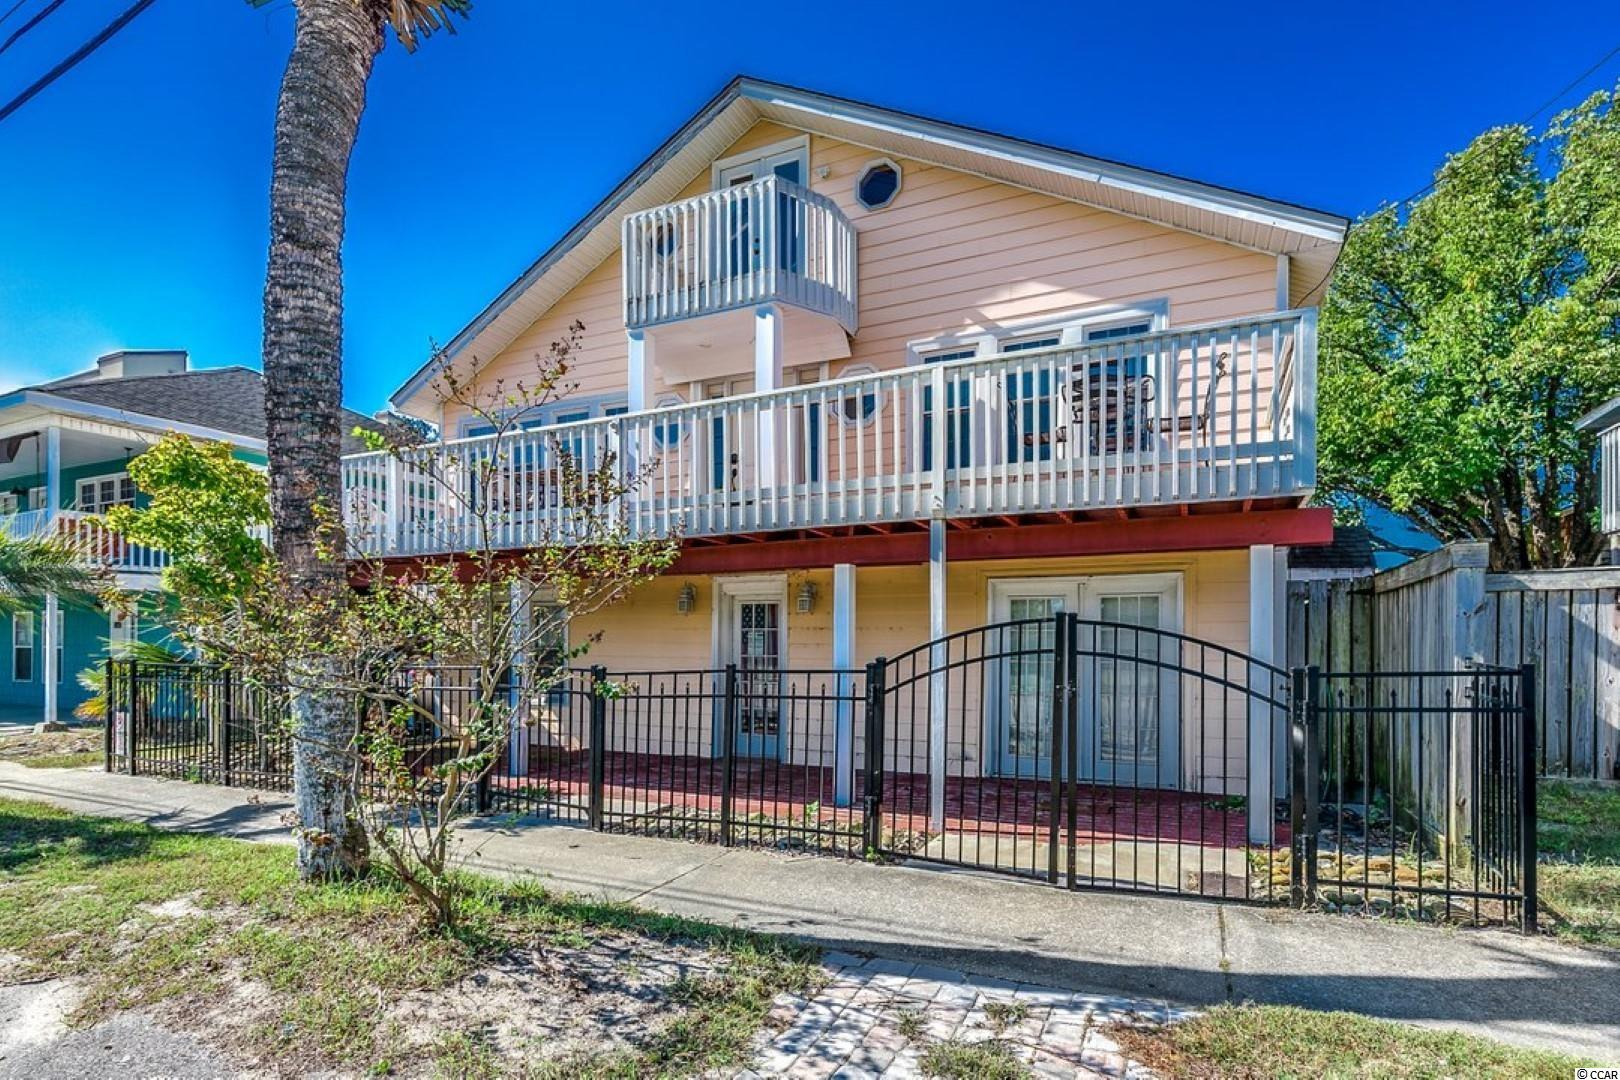 405 17th Ave. S North Myrtle Beach, SC 29582